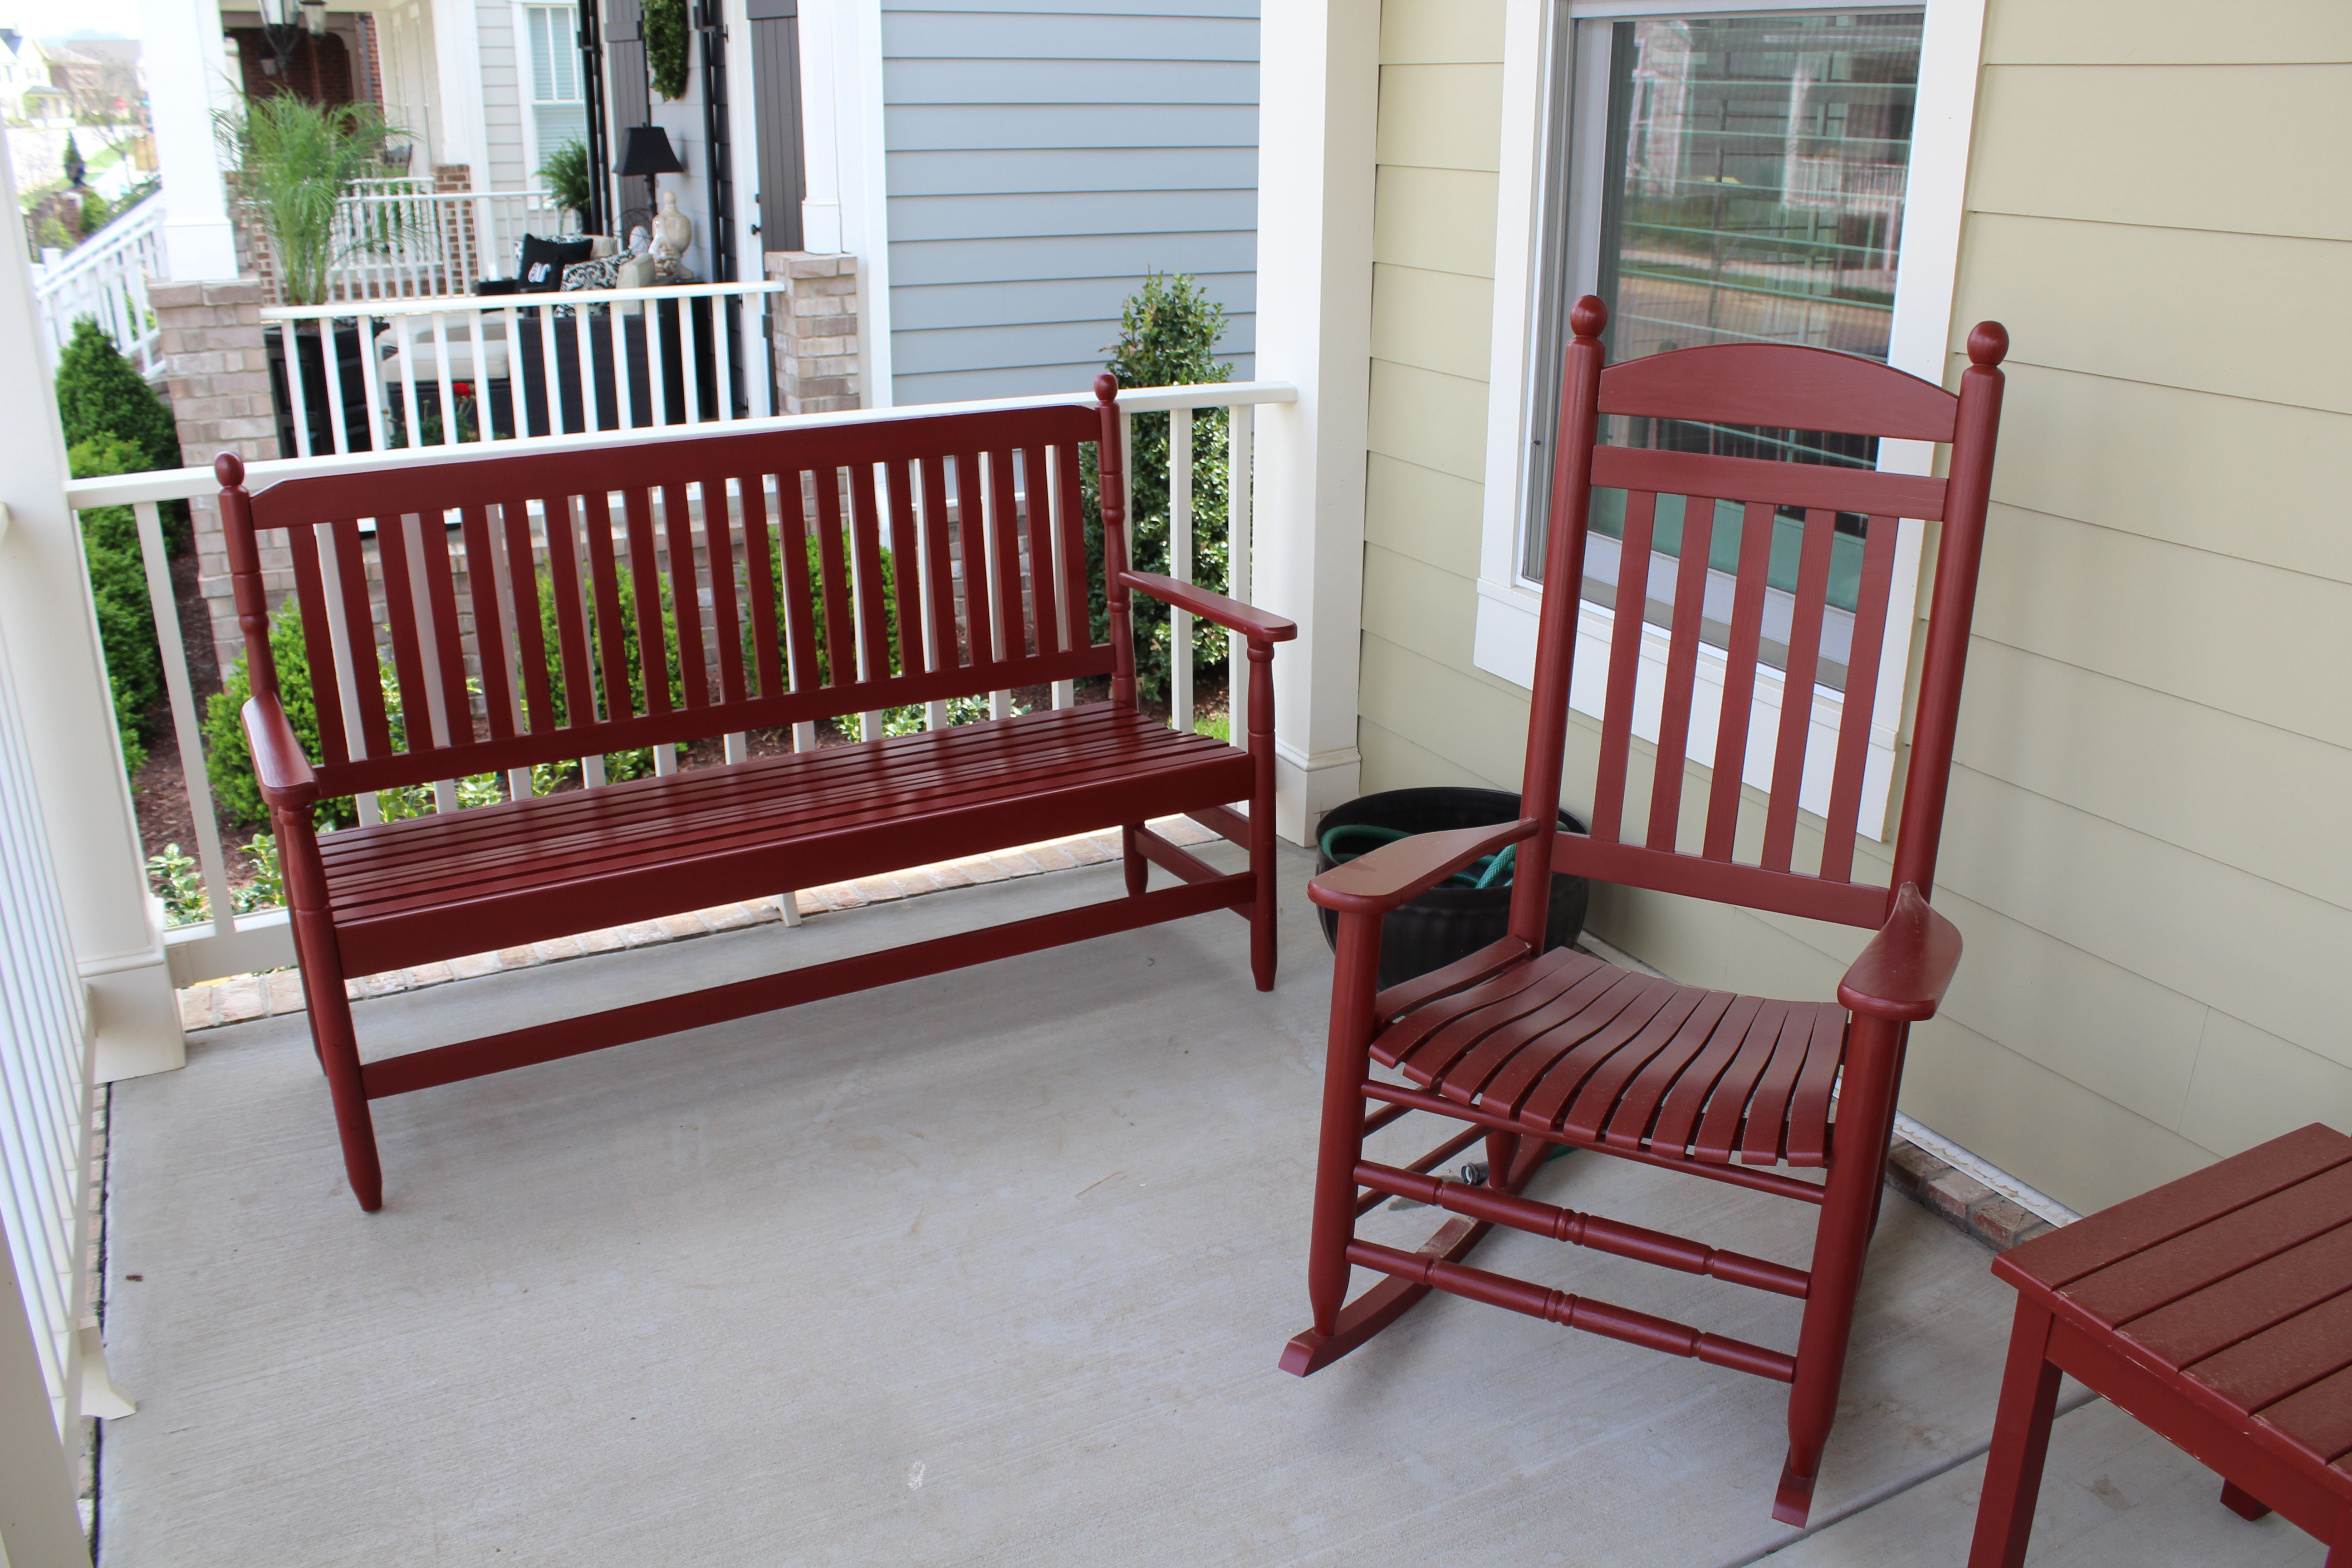 A beautiful porch bench just finished in General Finishes Tuscan Red on plumbing finishes, outdoor finishes, nichiha finishes, house paint finishes, industrial finishes, roof finishes,